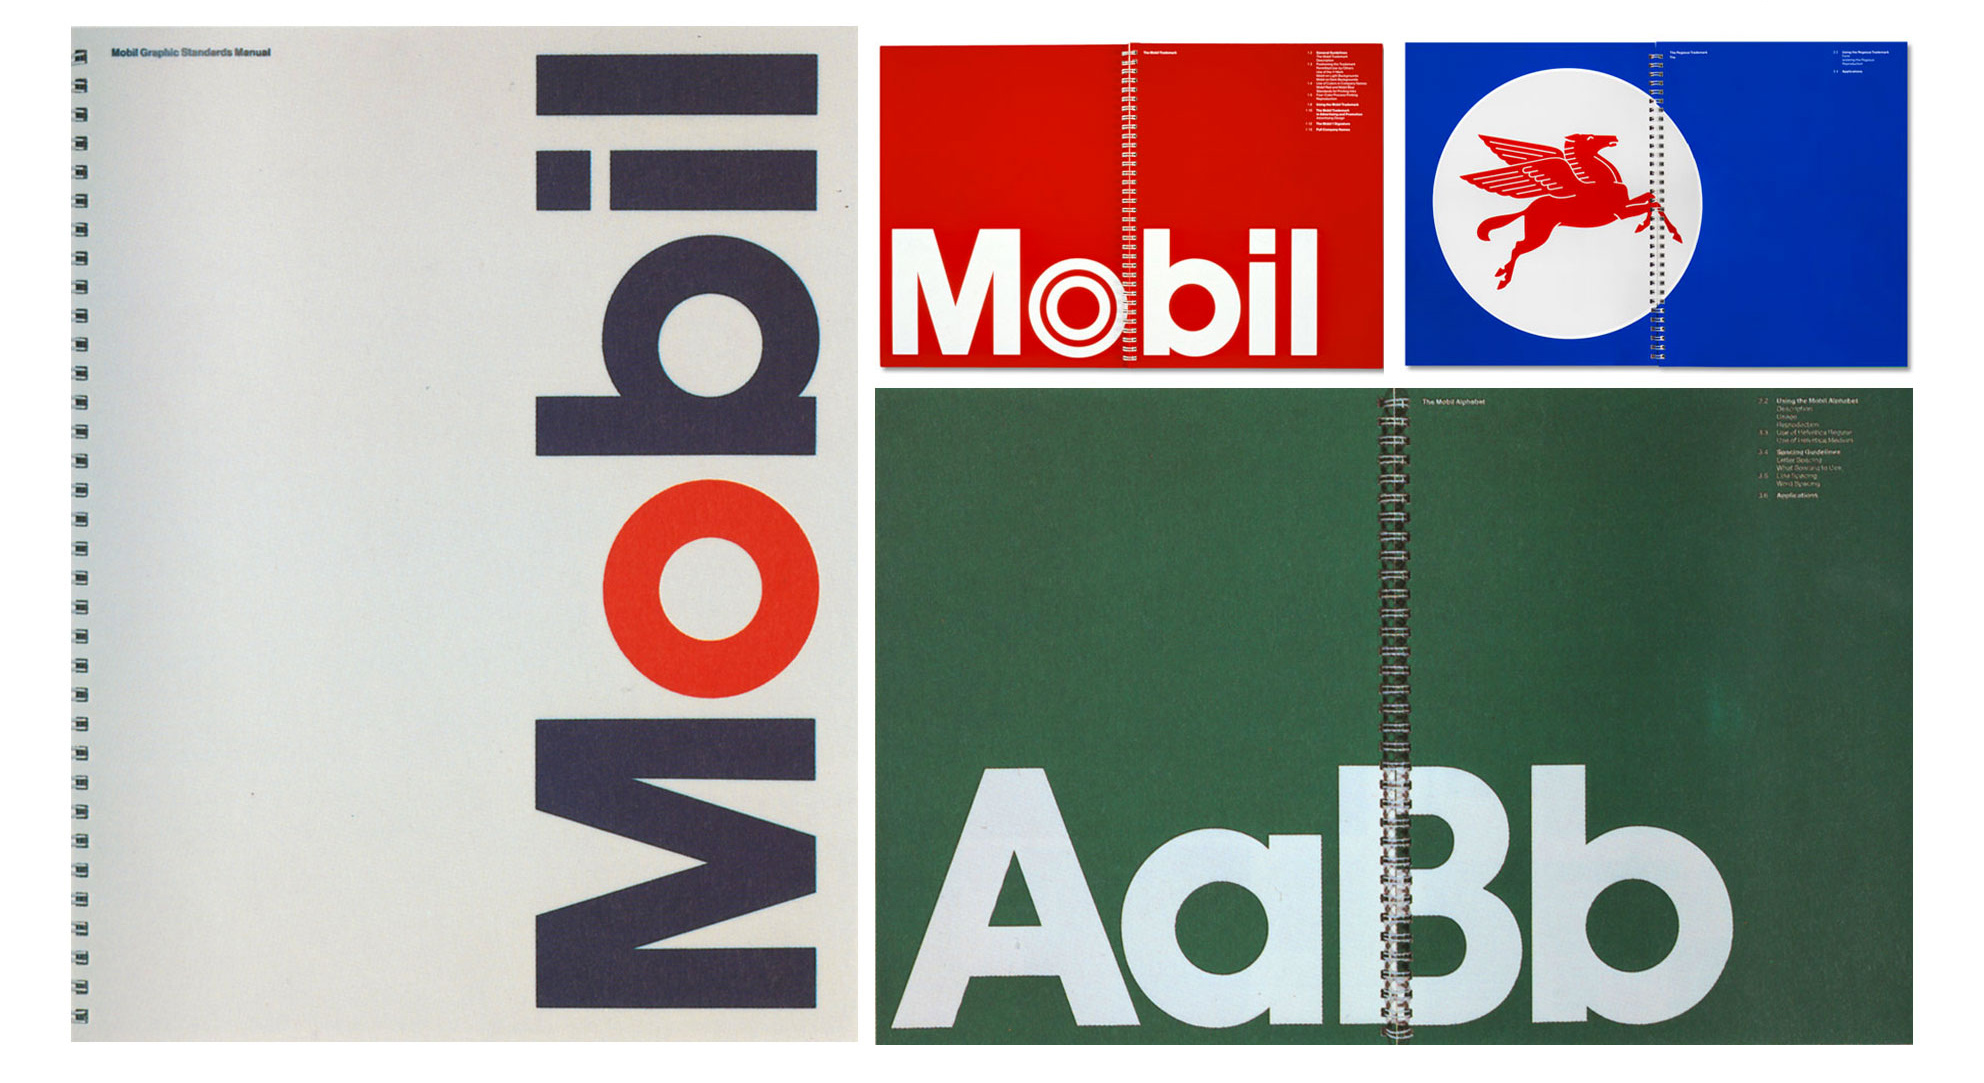 Chermayeff-and-Geismar-mobil-oil-identite-1964